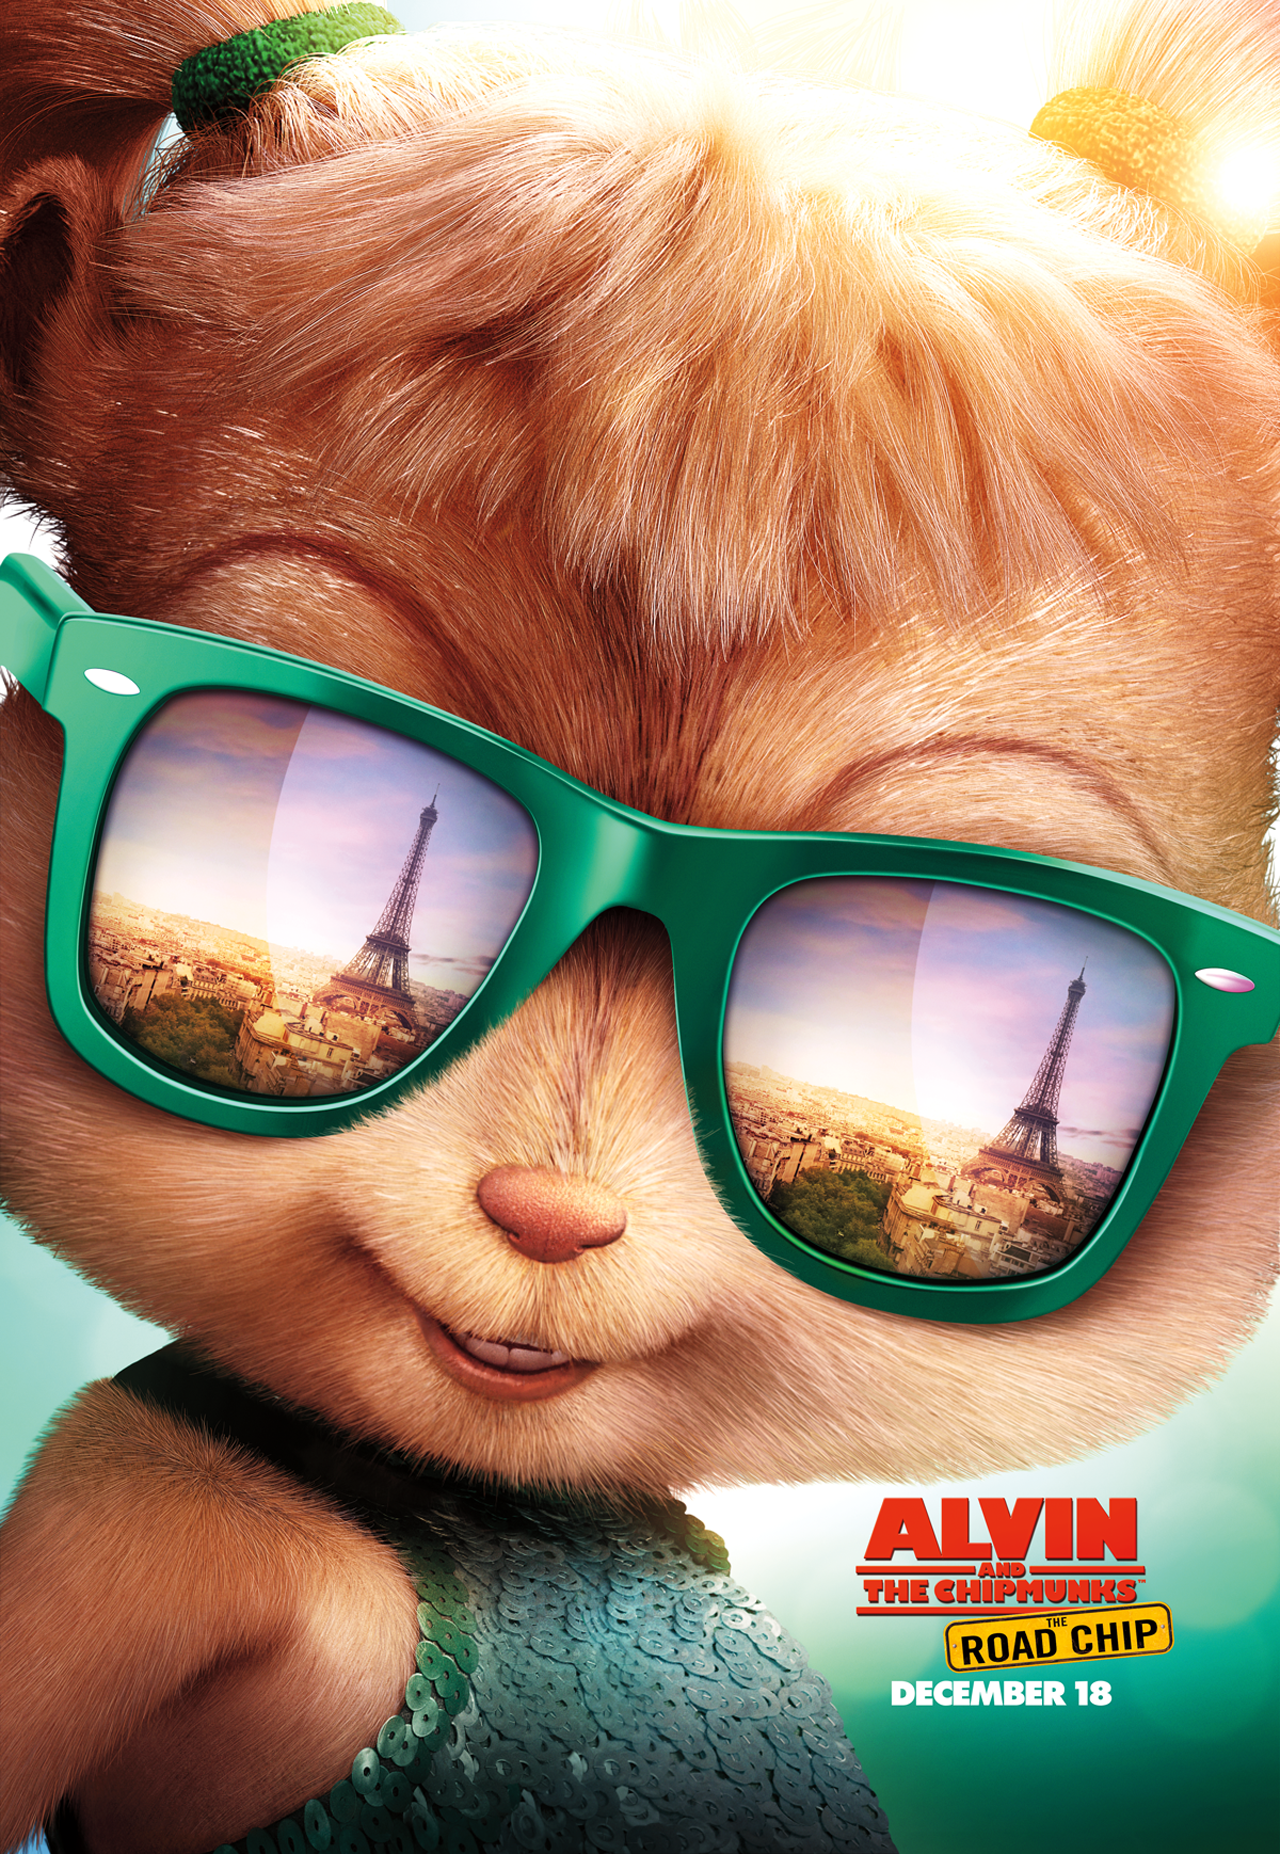 alvin and the chipmunks the road chip animated movies